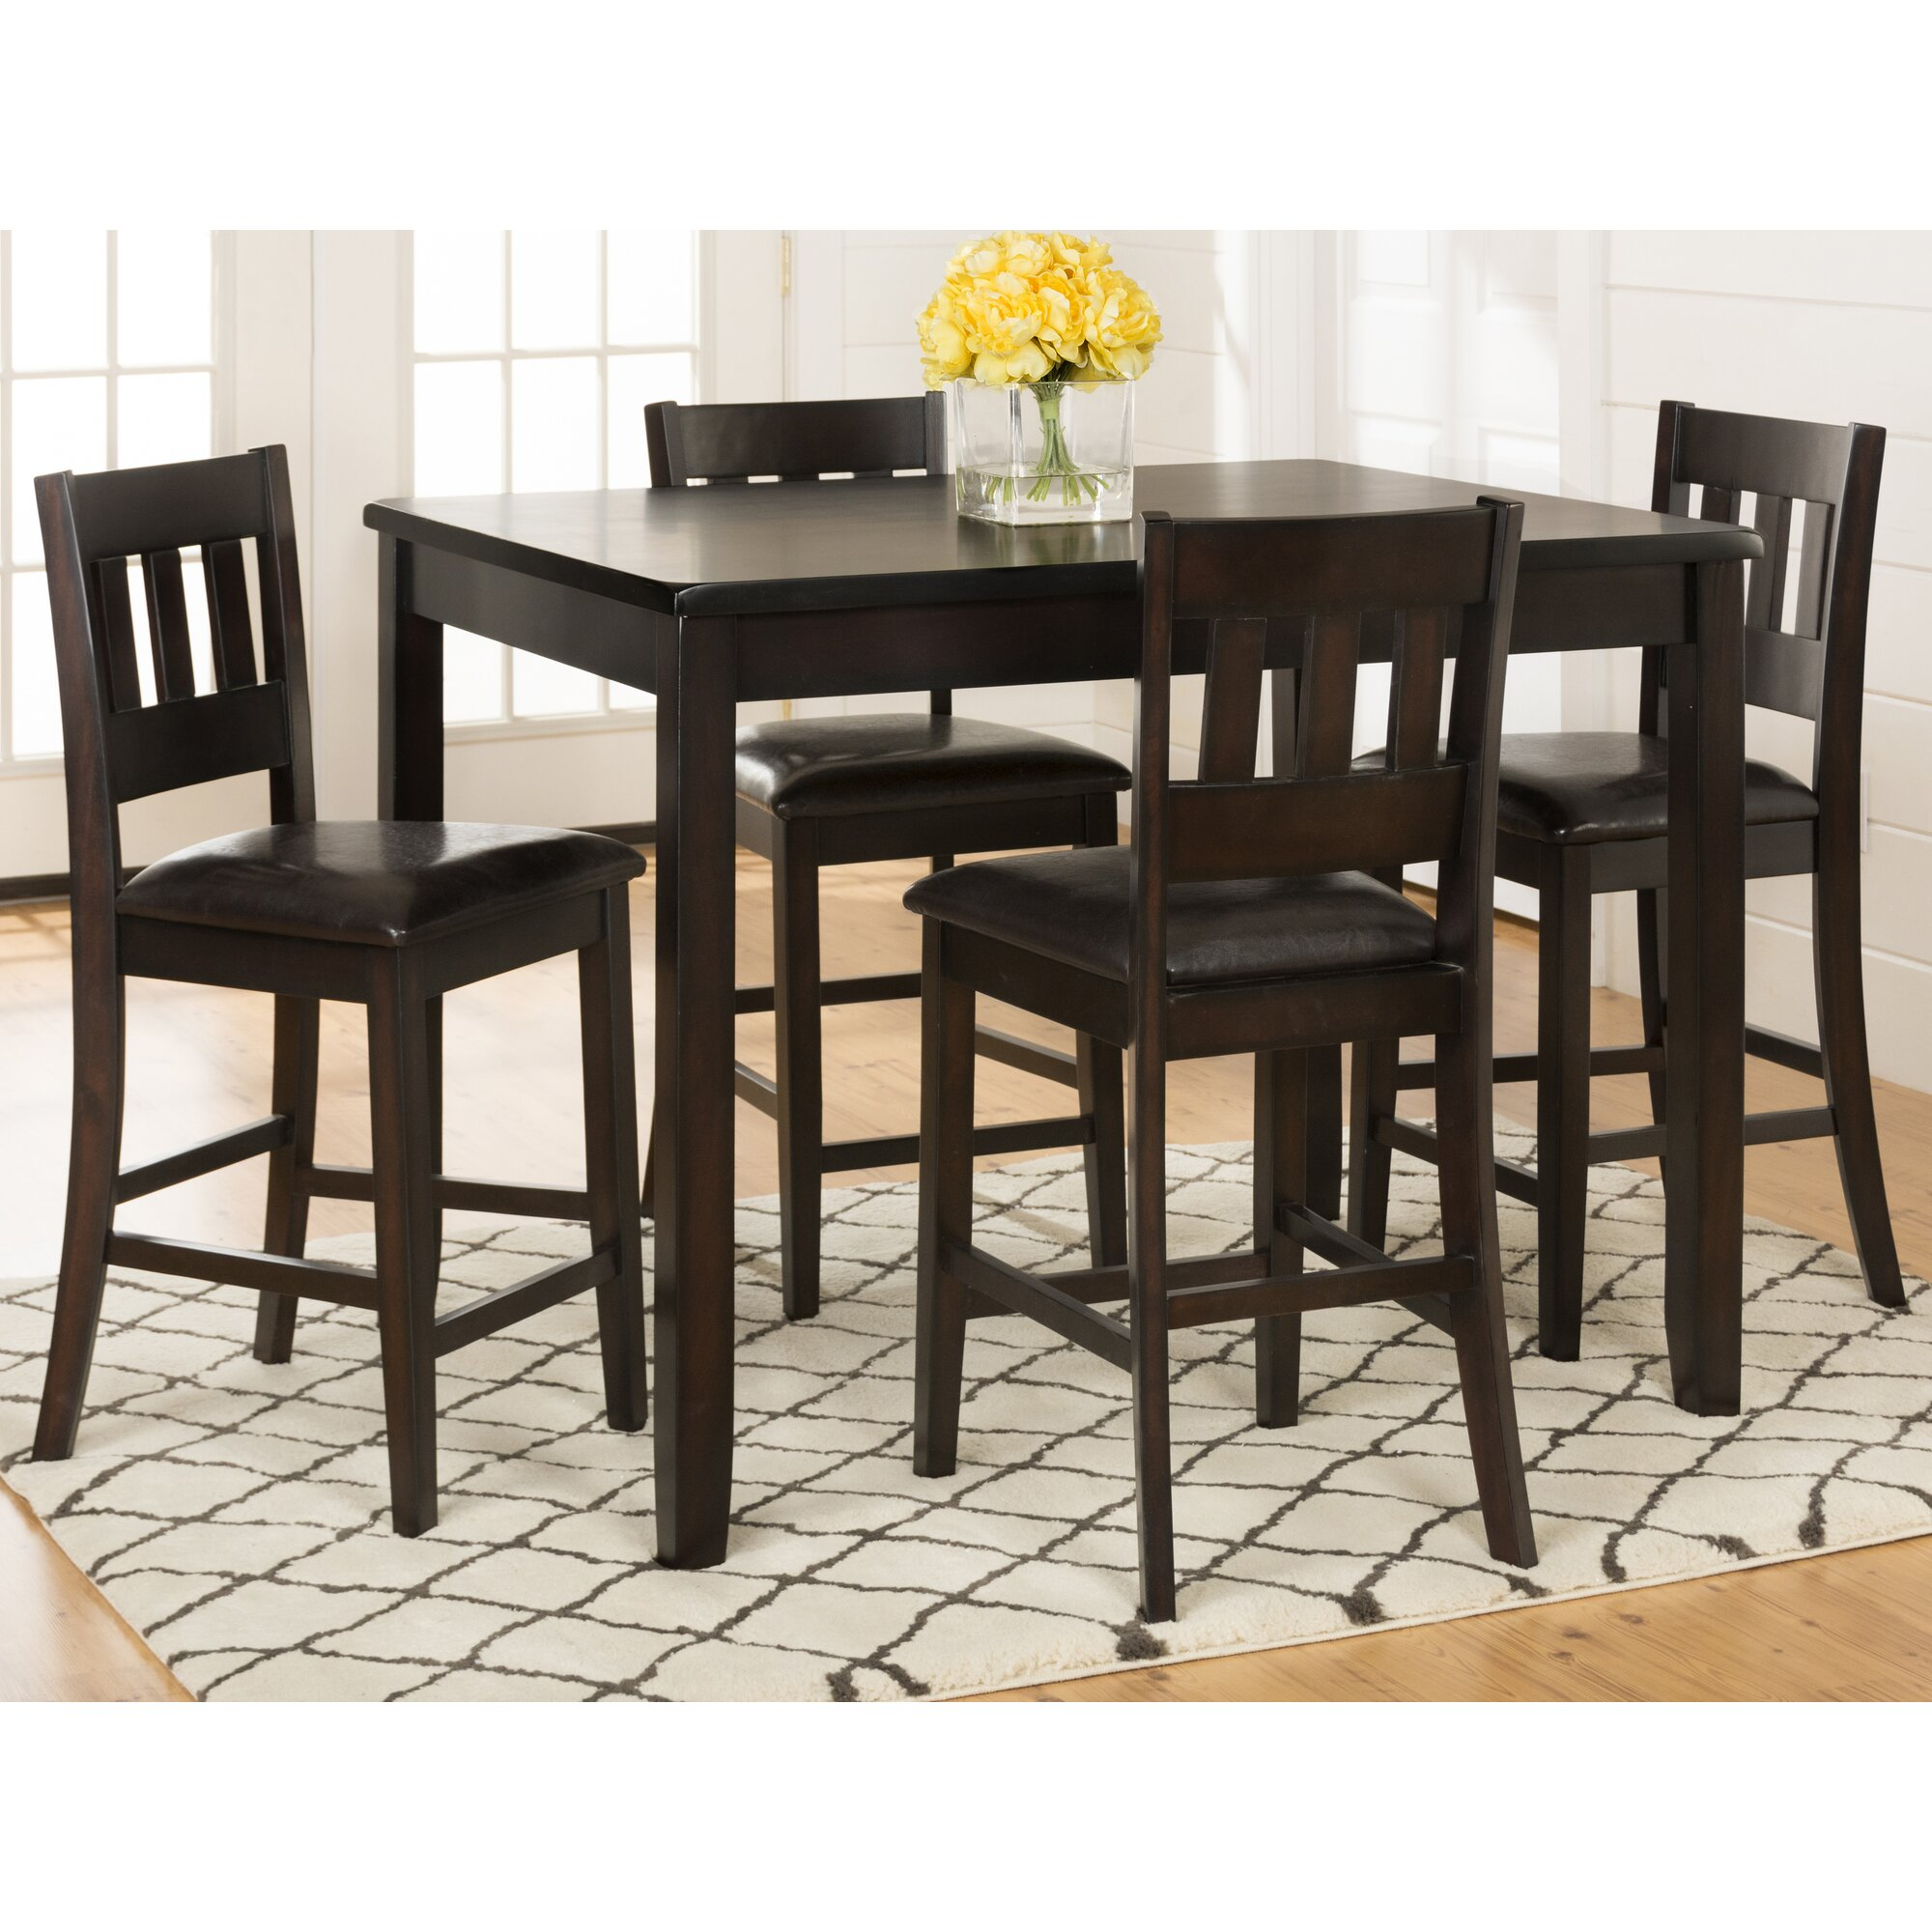 Kitchen pub table and chairs - Barney 5 Piece Counter Height Pub Table Set